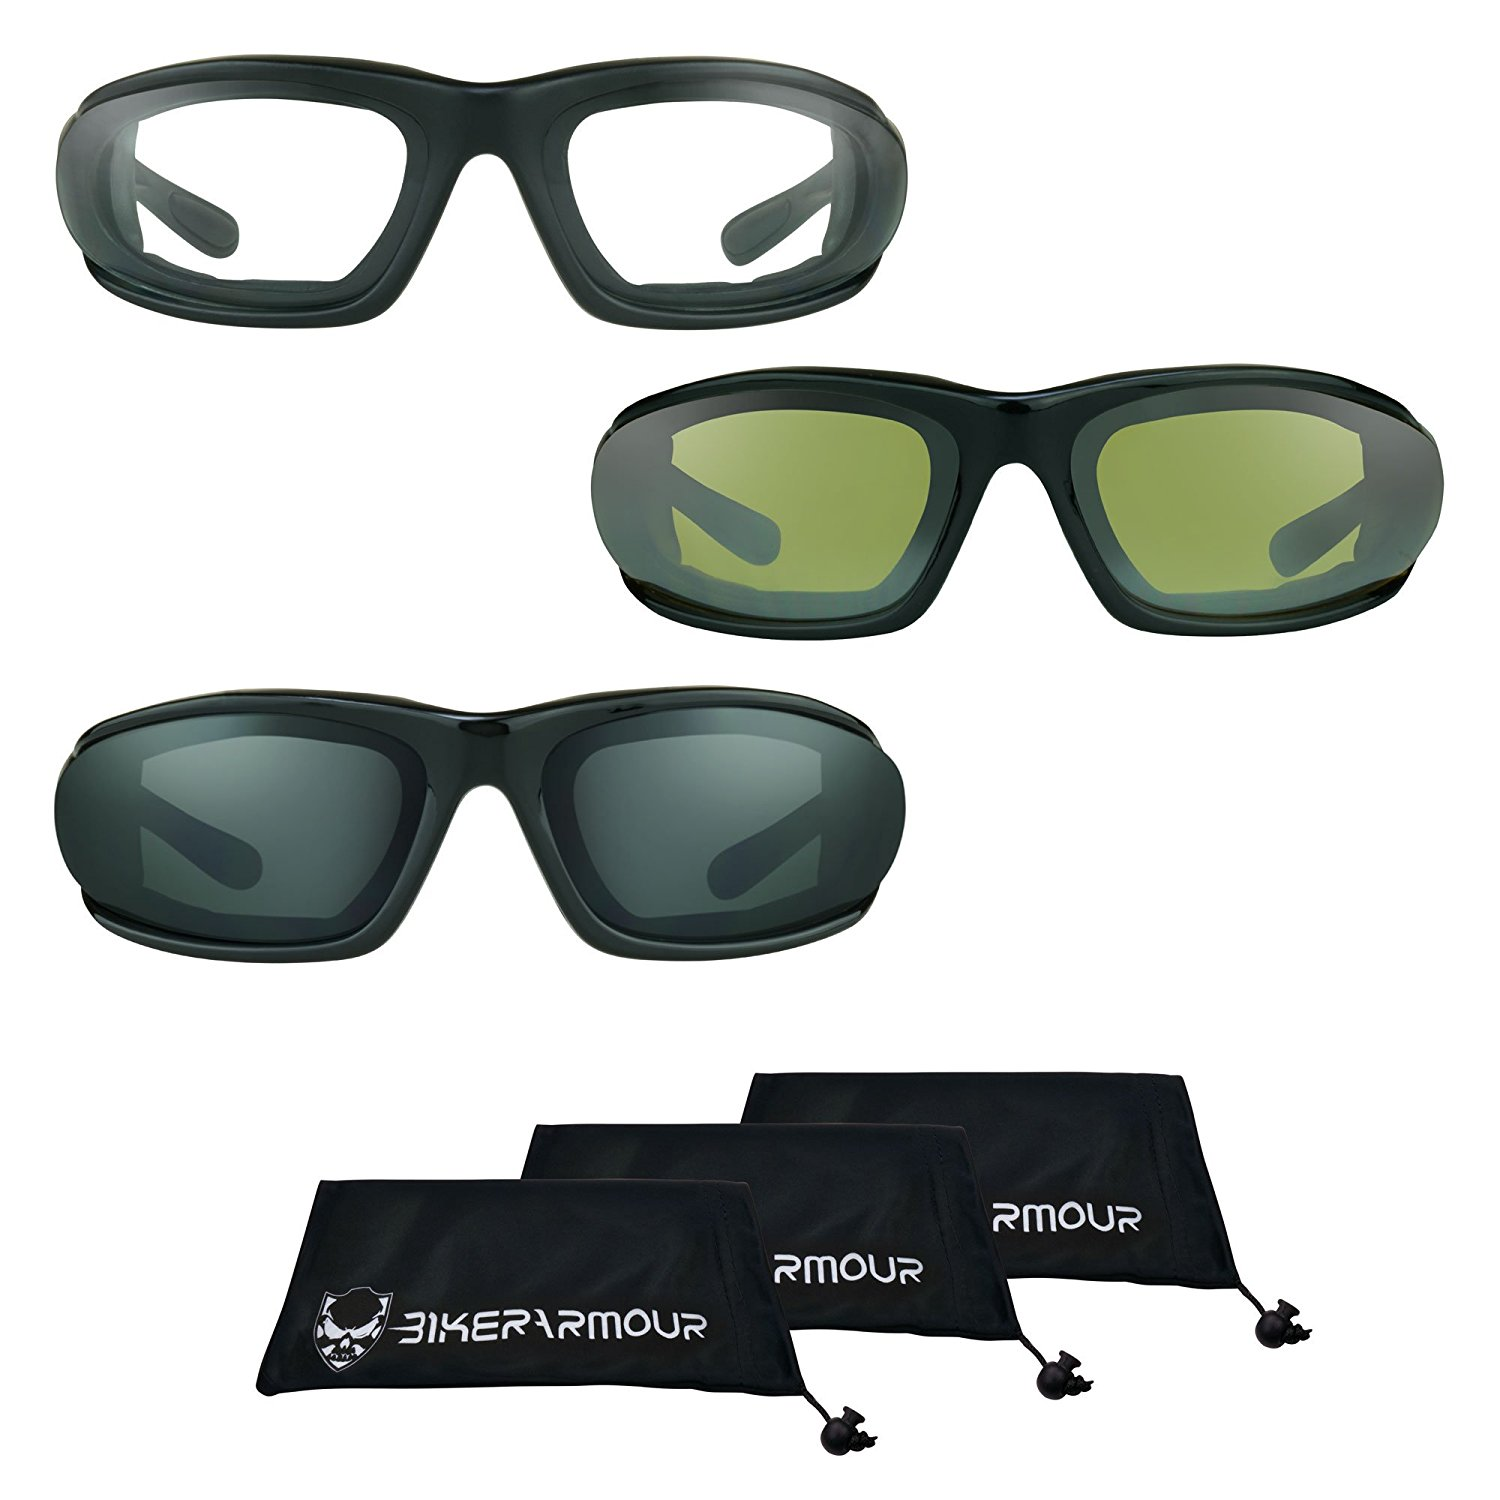 c41d18e53 Get Quotations · Small Motorcycle Sunglasses Foam Padded for Women, Boys  and Girls (Black Clear + Black